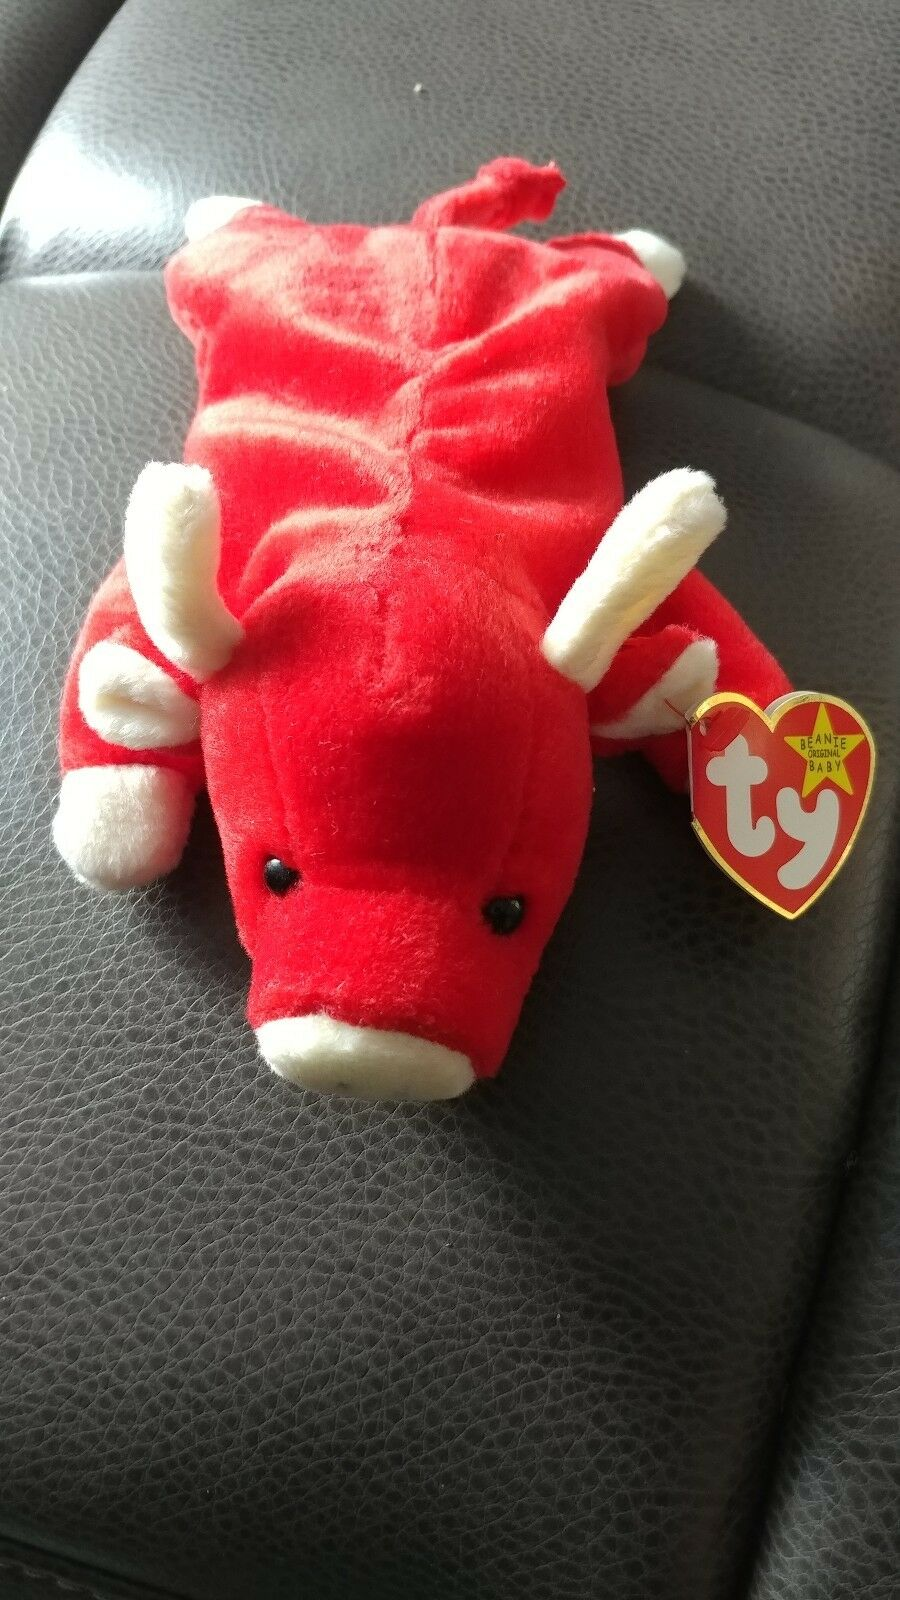 Extremely Rare  1st  SNORT 1995 TY INC Beanie Baby w 2 Swing Tag Errors PVC